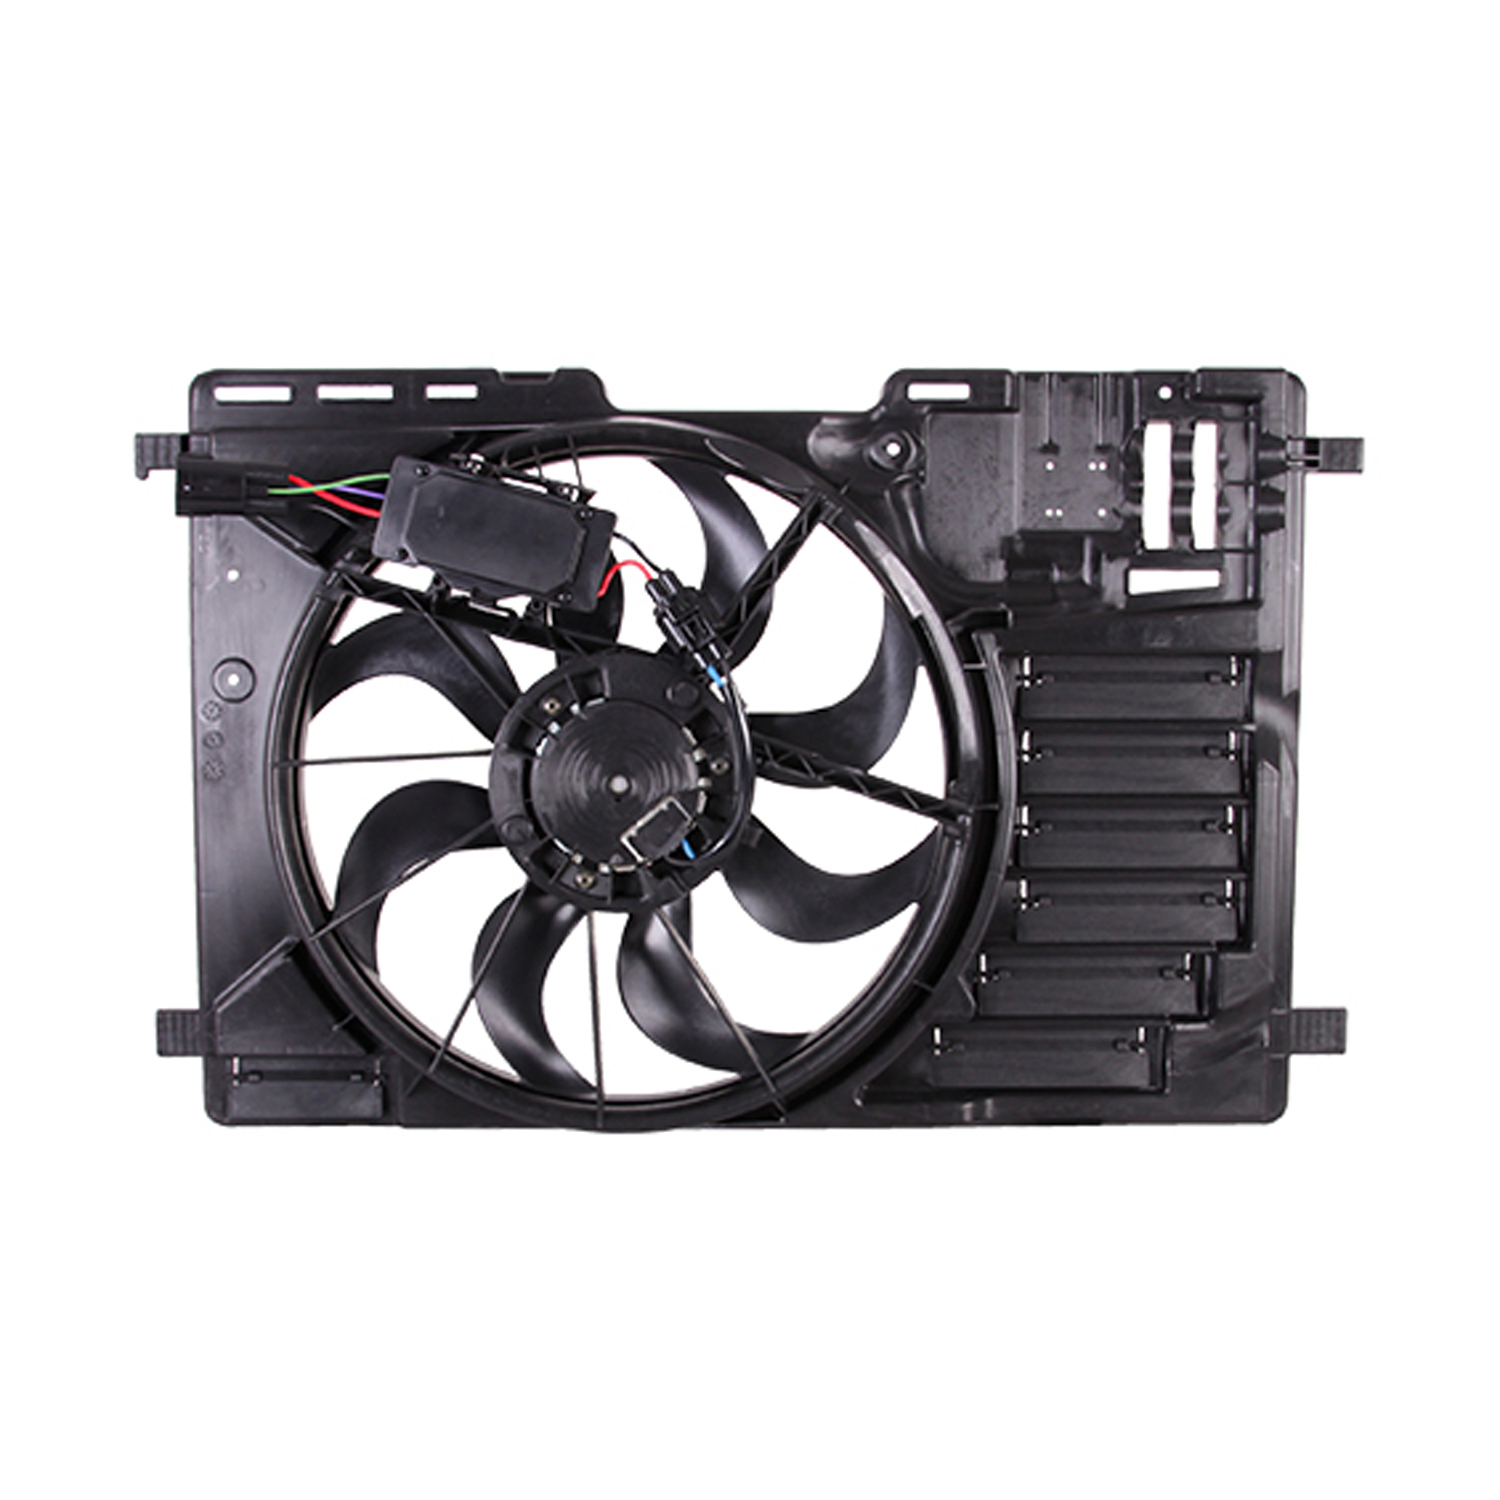 CPP Engine Cooling Fan Assembly FO3115200 for 14-17 Ford Transit Connect